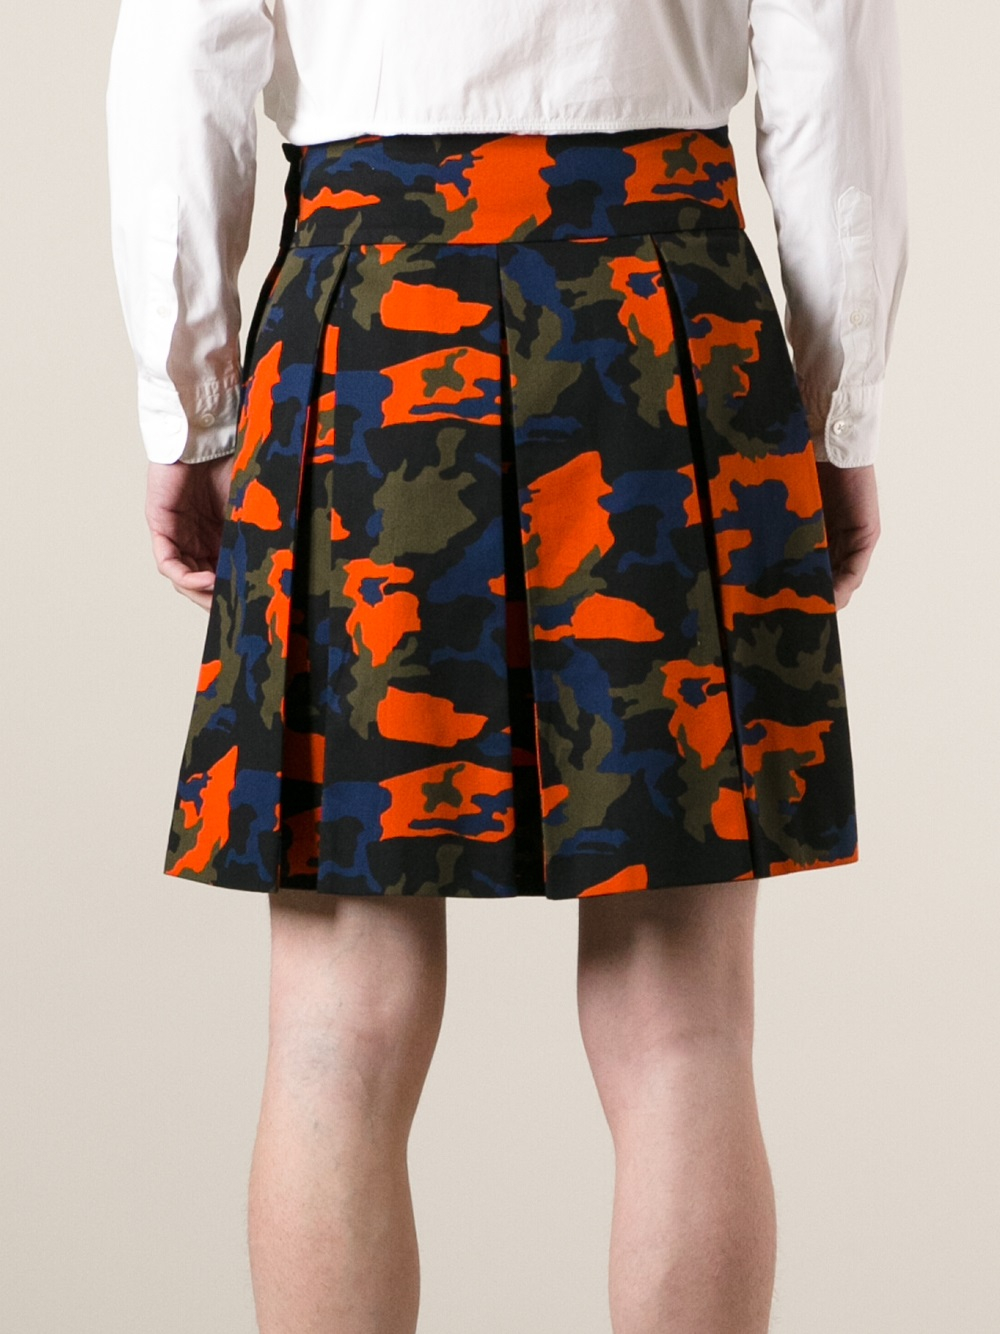 Lyst - Givenchy Camouflage Kilt in Green for Men